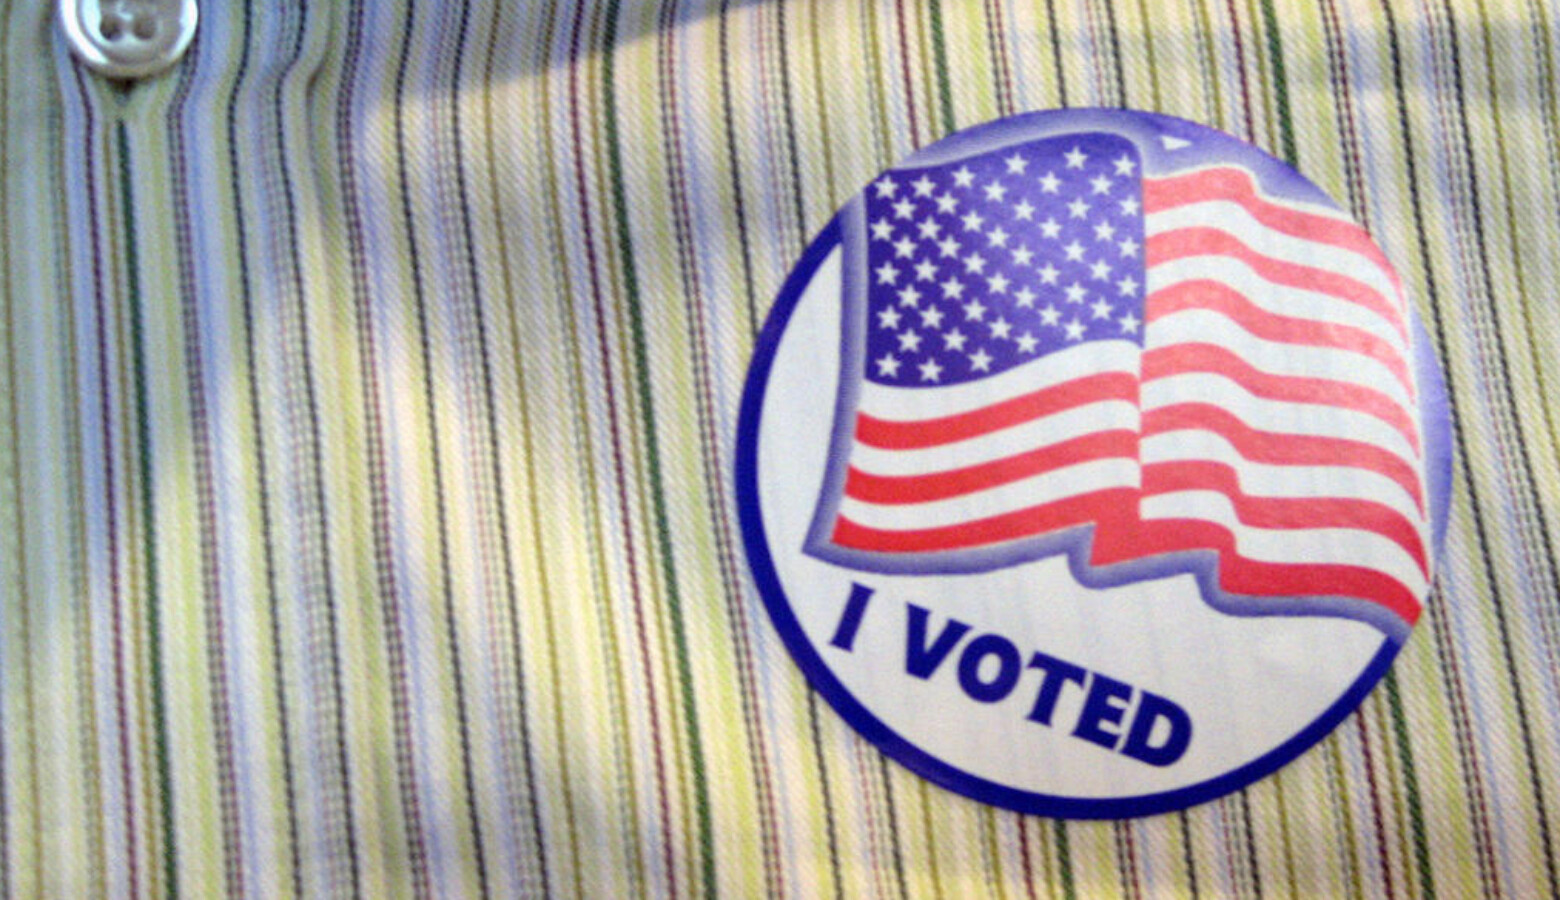 There are 11 reasons under Indiana law a person is allowed to vote absentee by mail. (Daniel Morrison/Flickr)